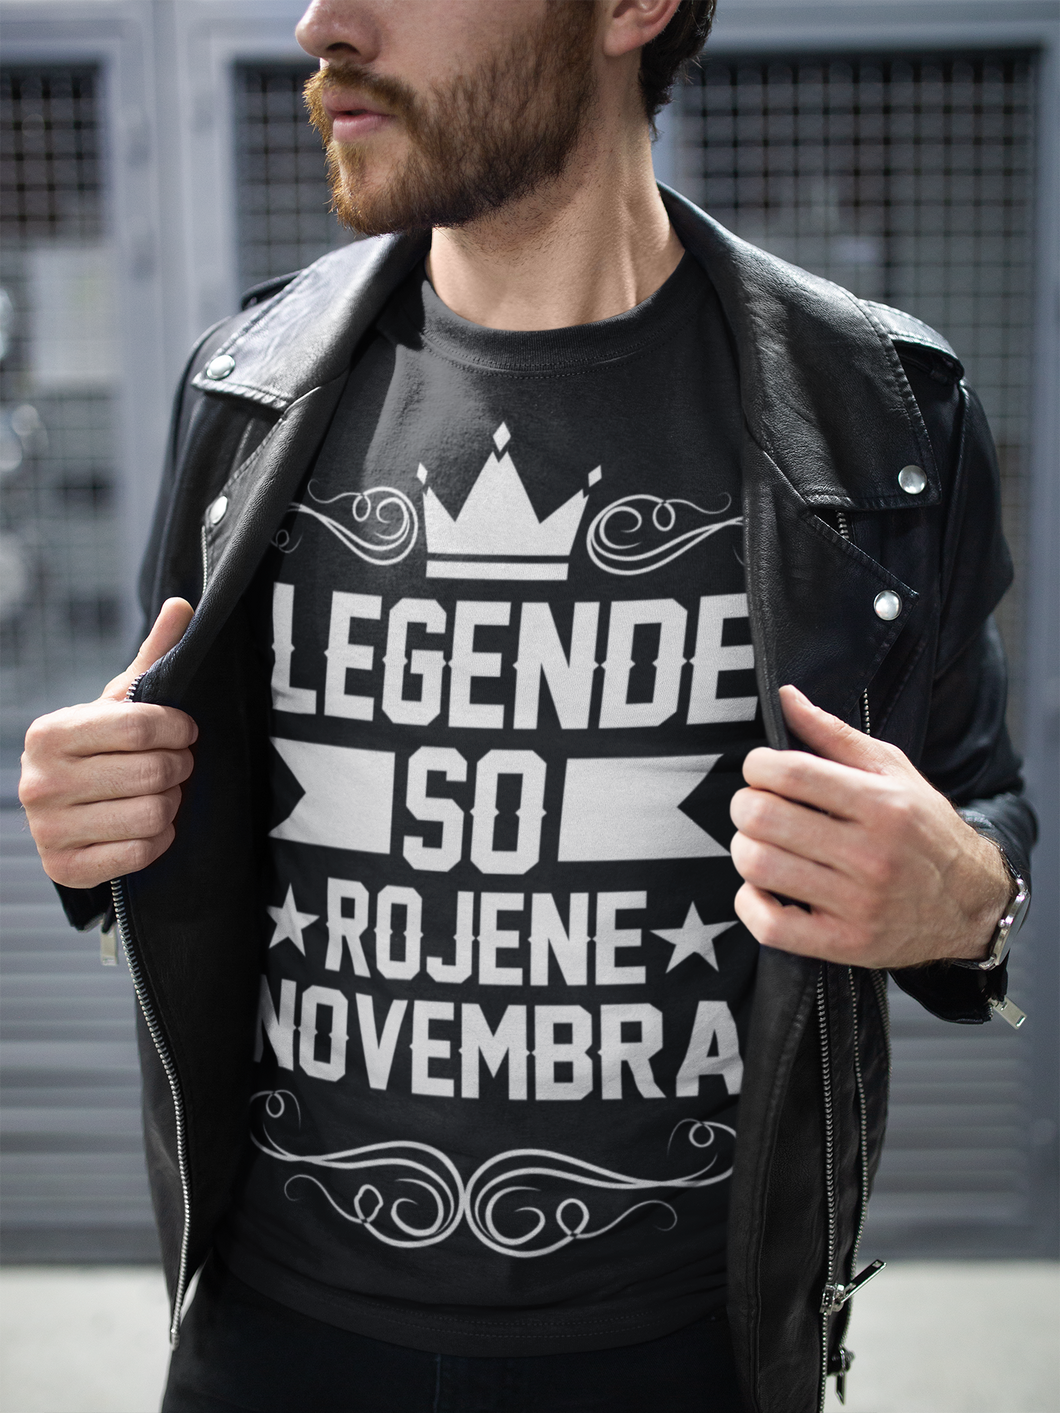 Majica Legende So Rojene - Novembra